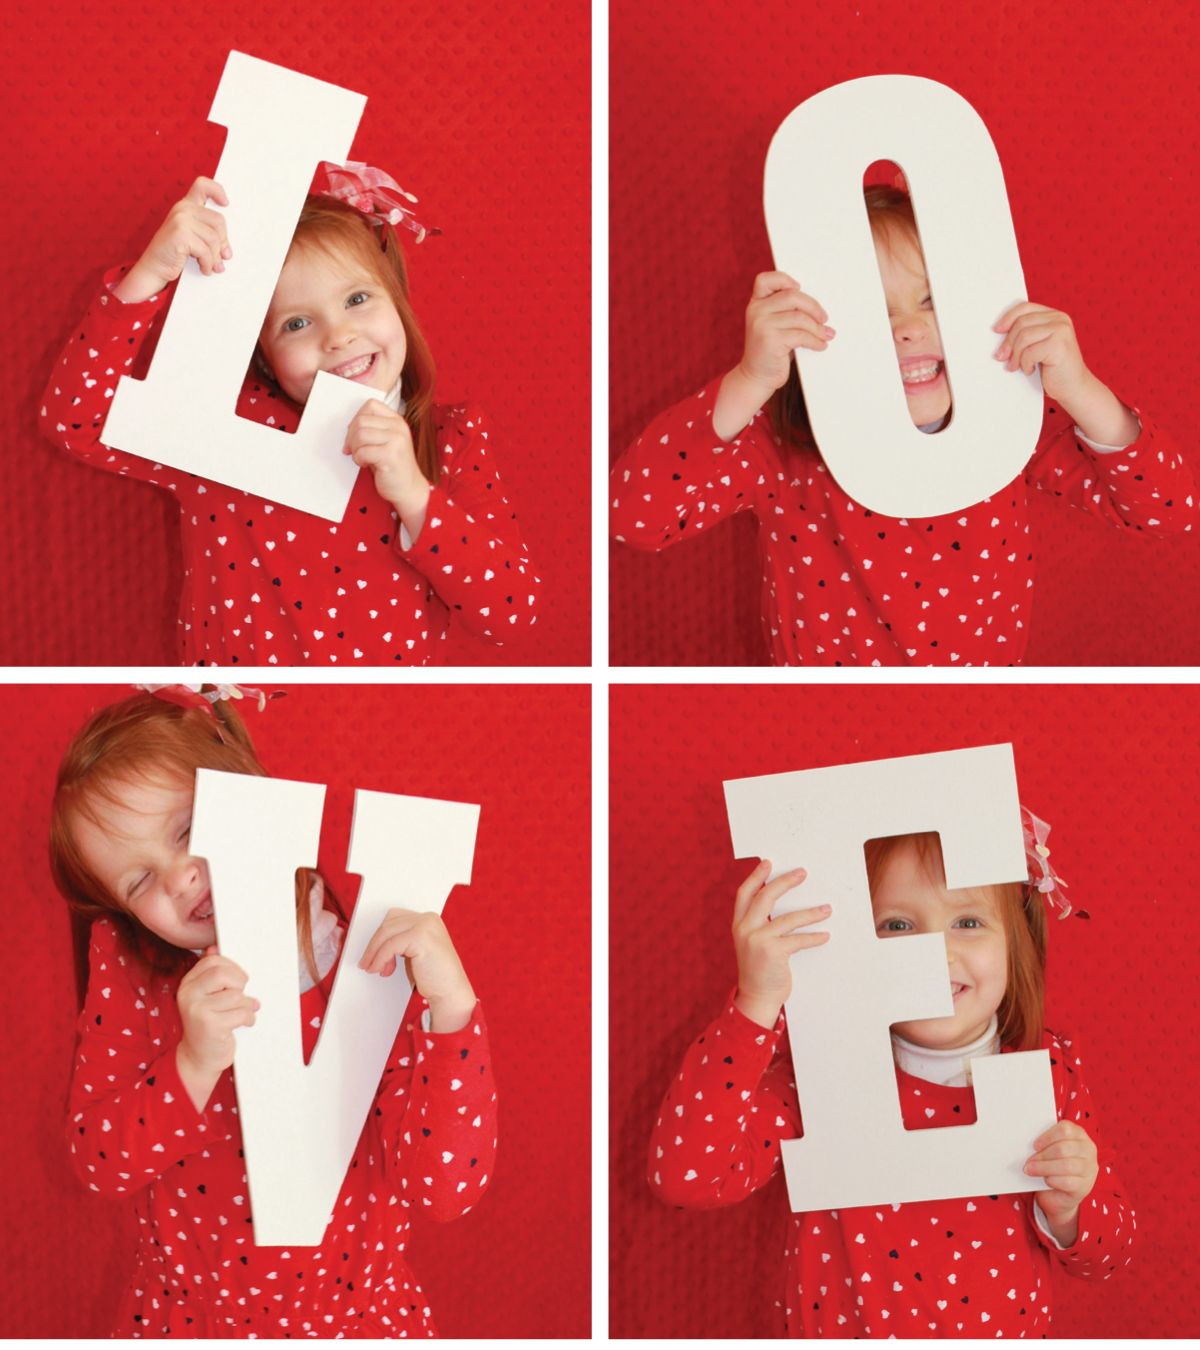 17 Best images about Photography Valentie Day on Pinterest ...